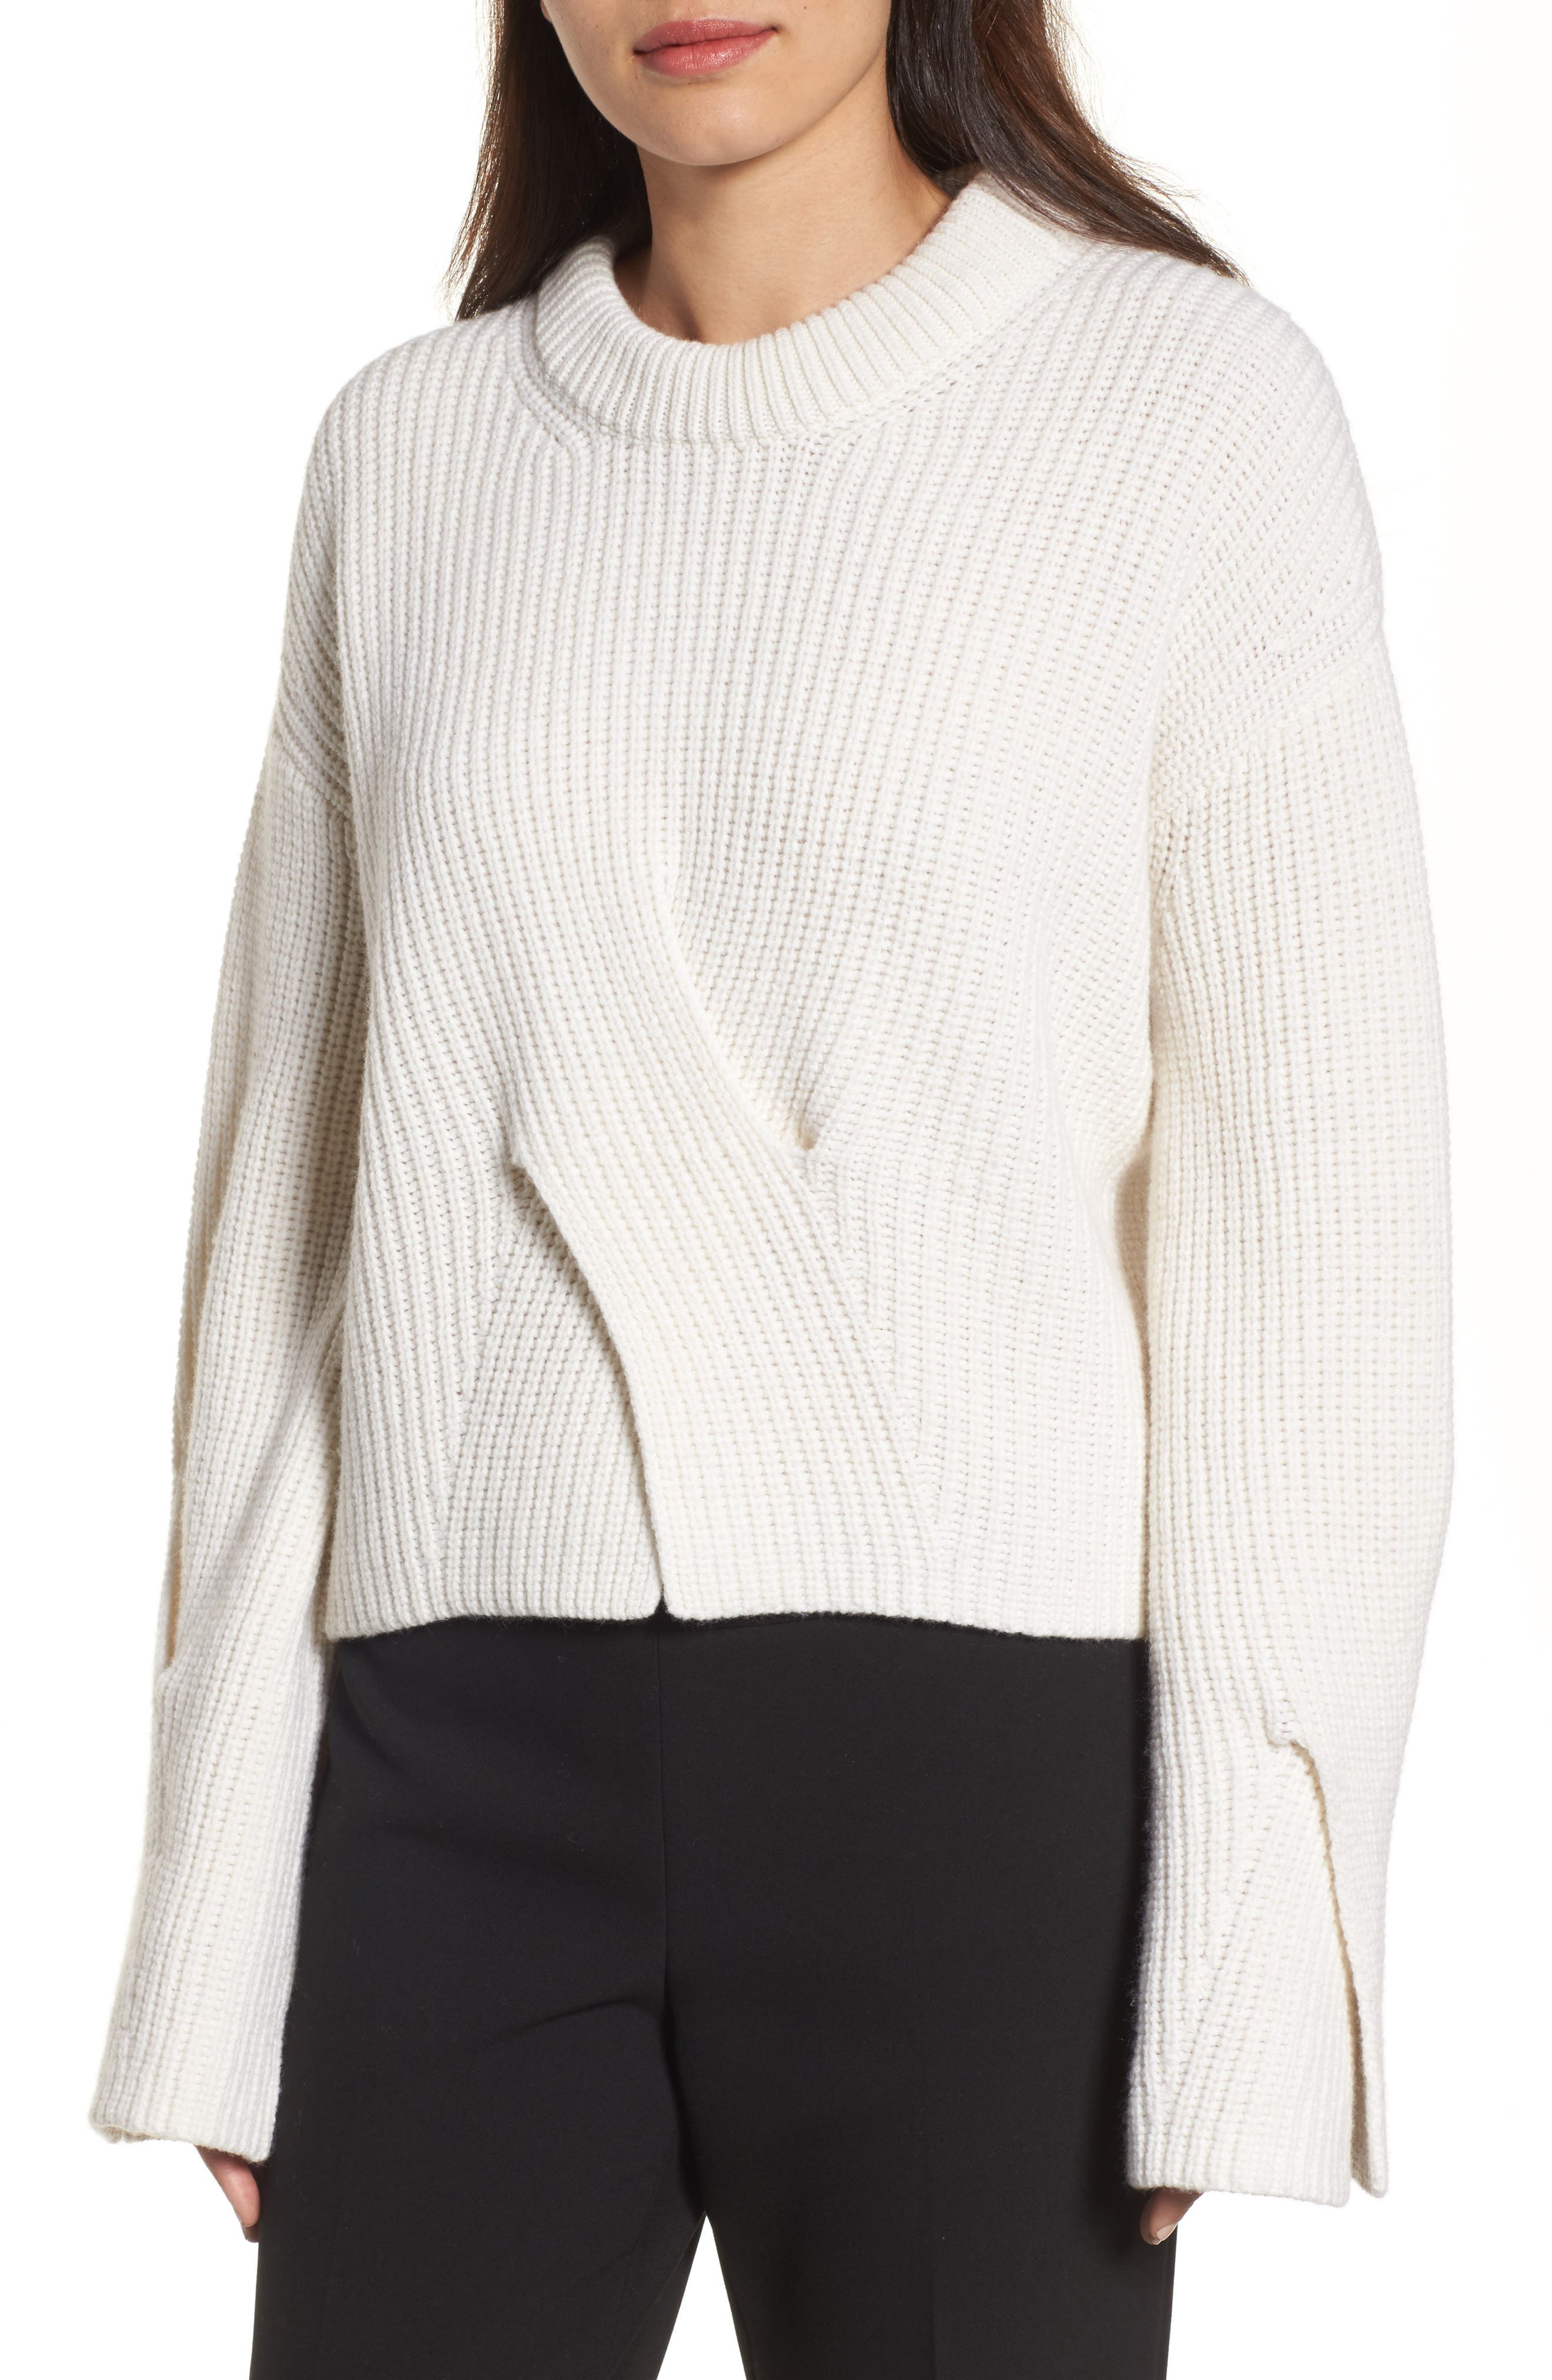 Fihra Wool Blend Sweater,                             Main thumbnail 1, color,                             252